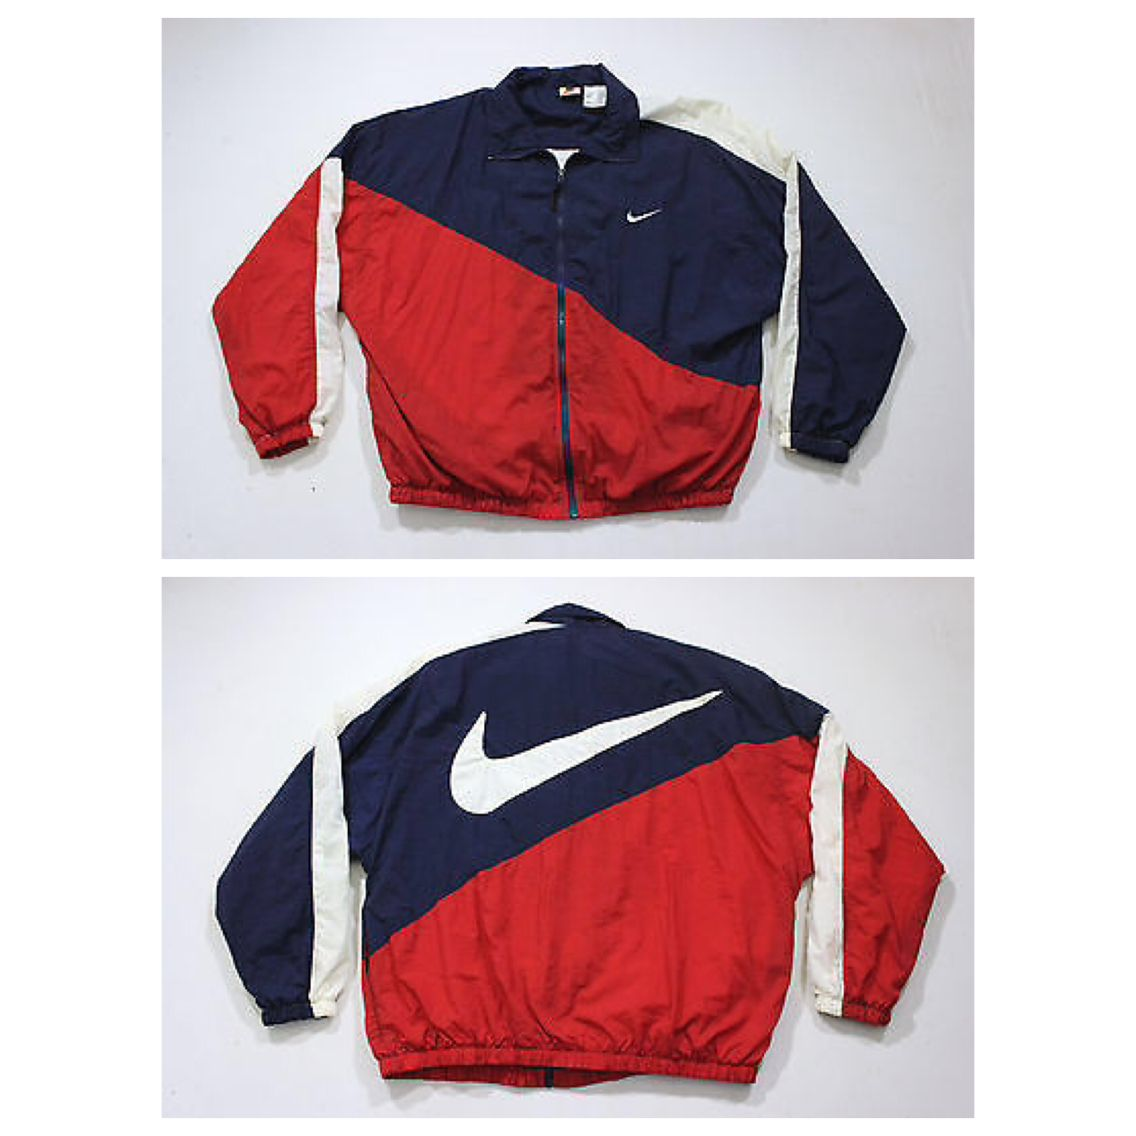 NIKE Windbreaker Jacket Vintage 90's Nylon Shell Zip Jacket Striped Color Block Nike Sportswear Embroidered L Usa sakFyY